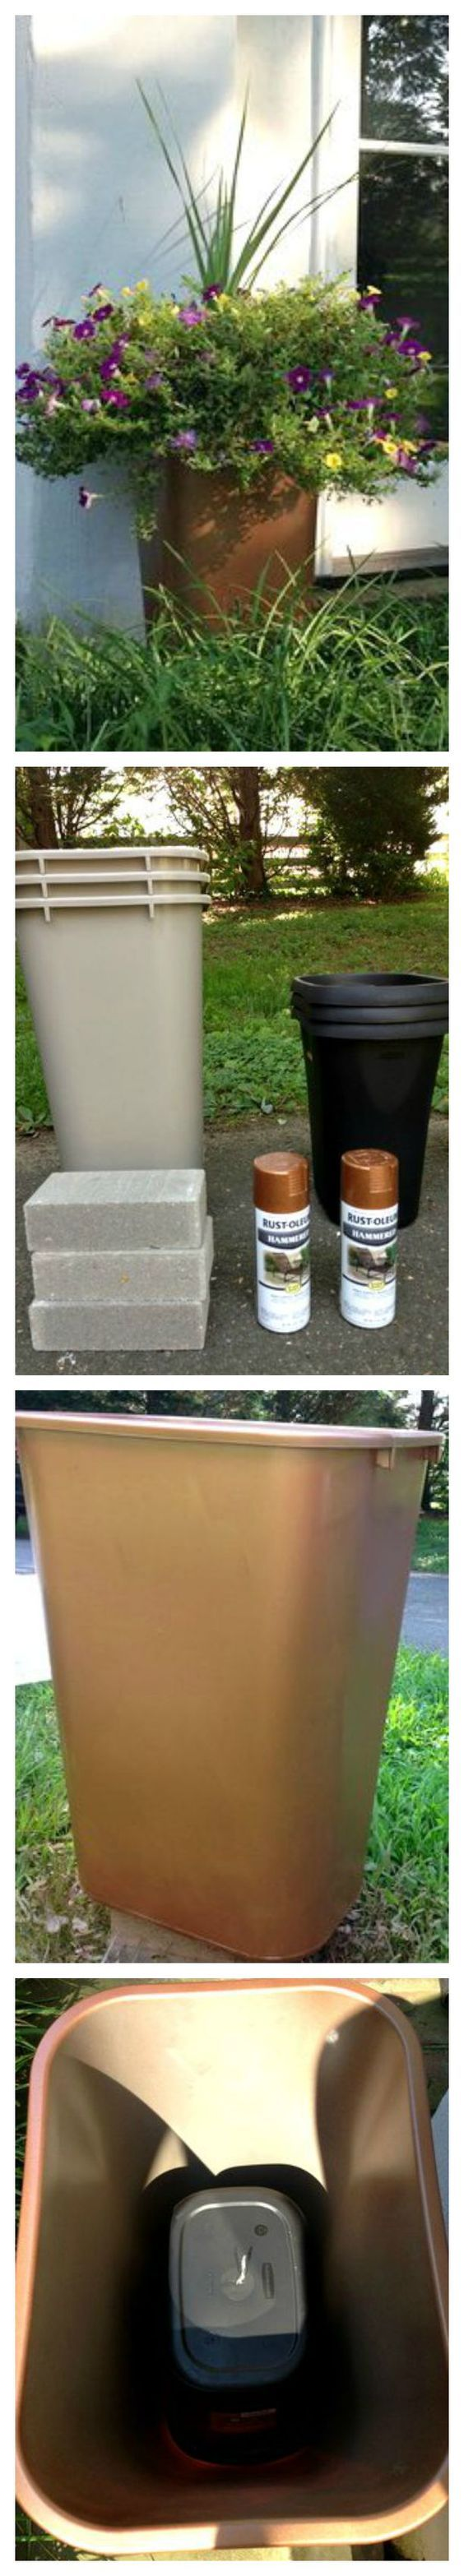 Diy large outdoor planters for cheap create large lovely planters by spray painting cheap Cheap spray paint cans